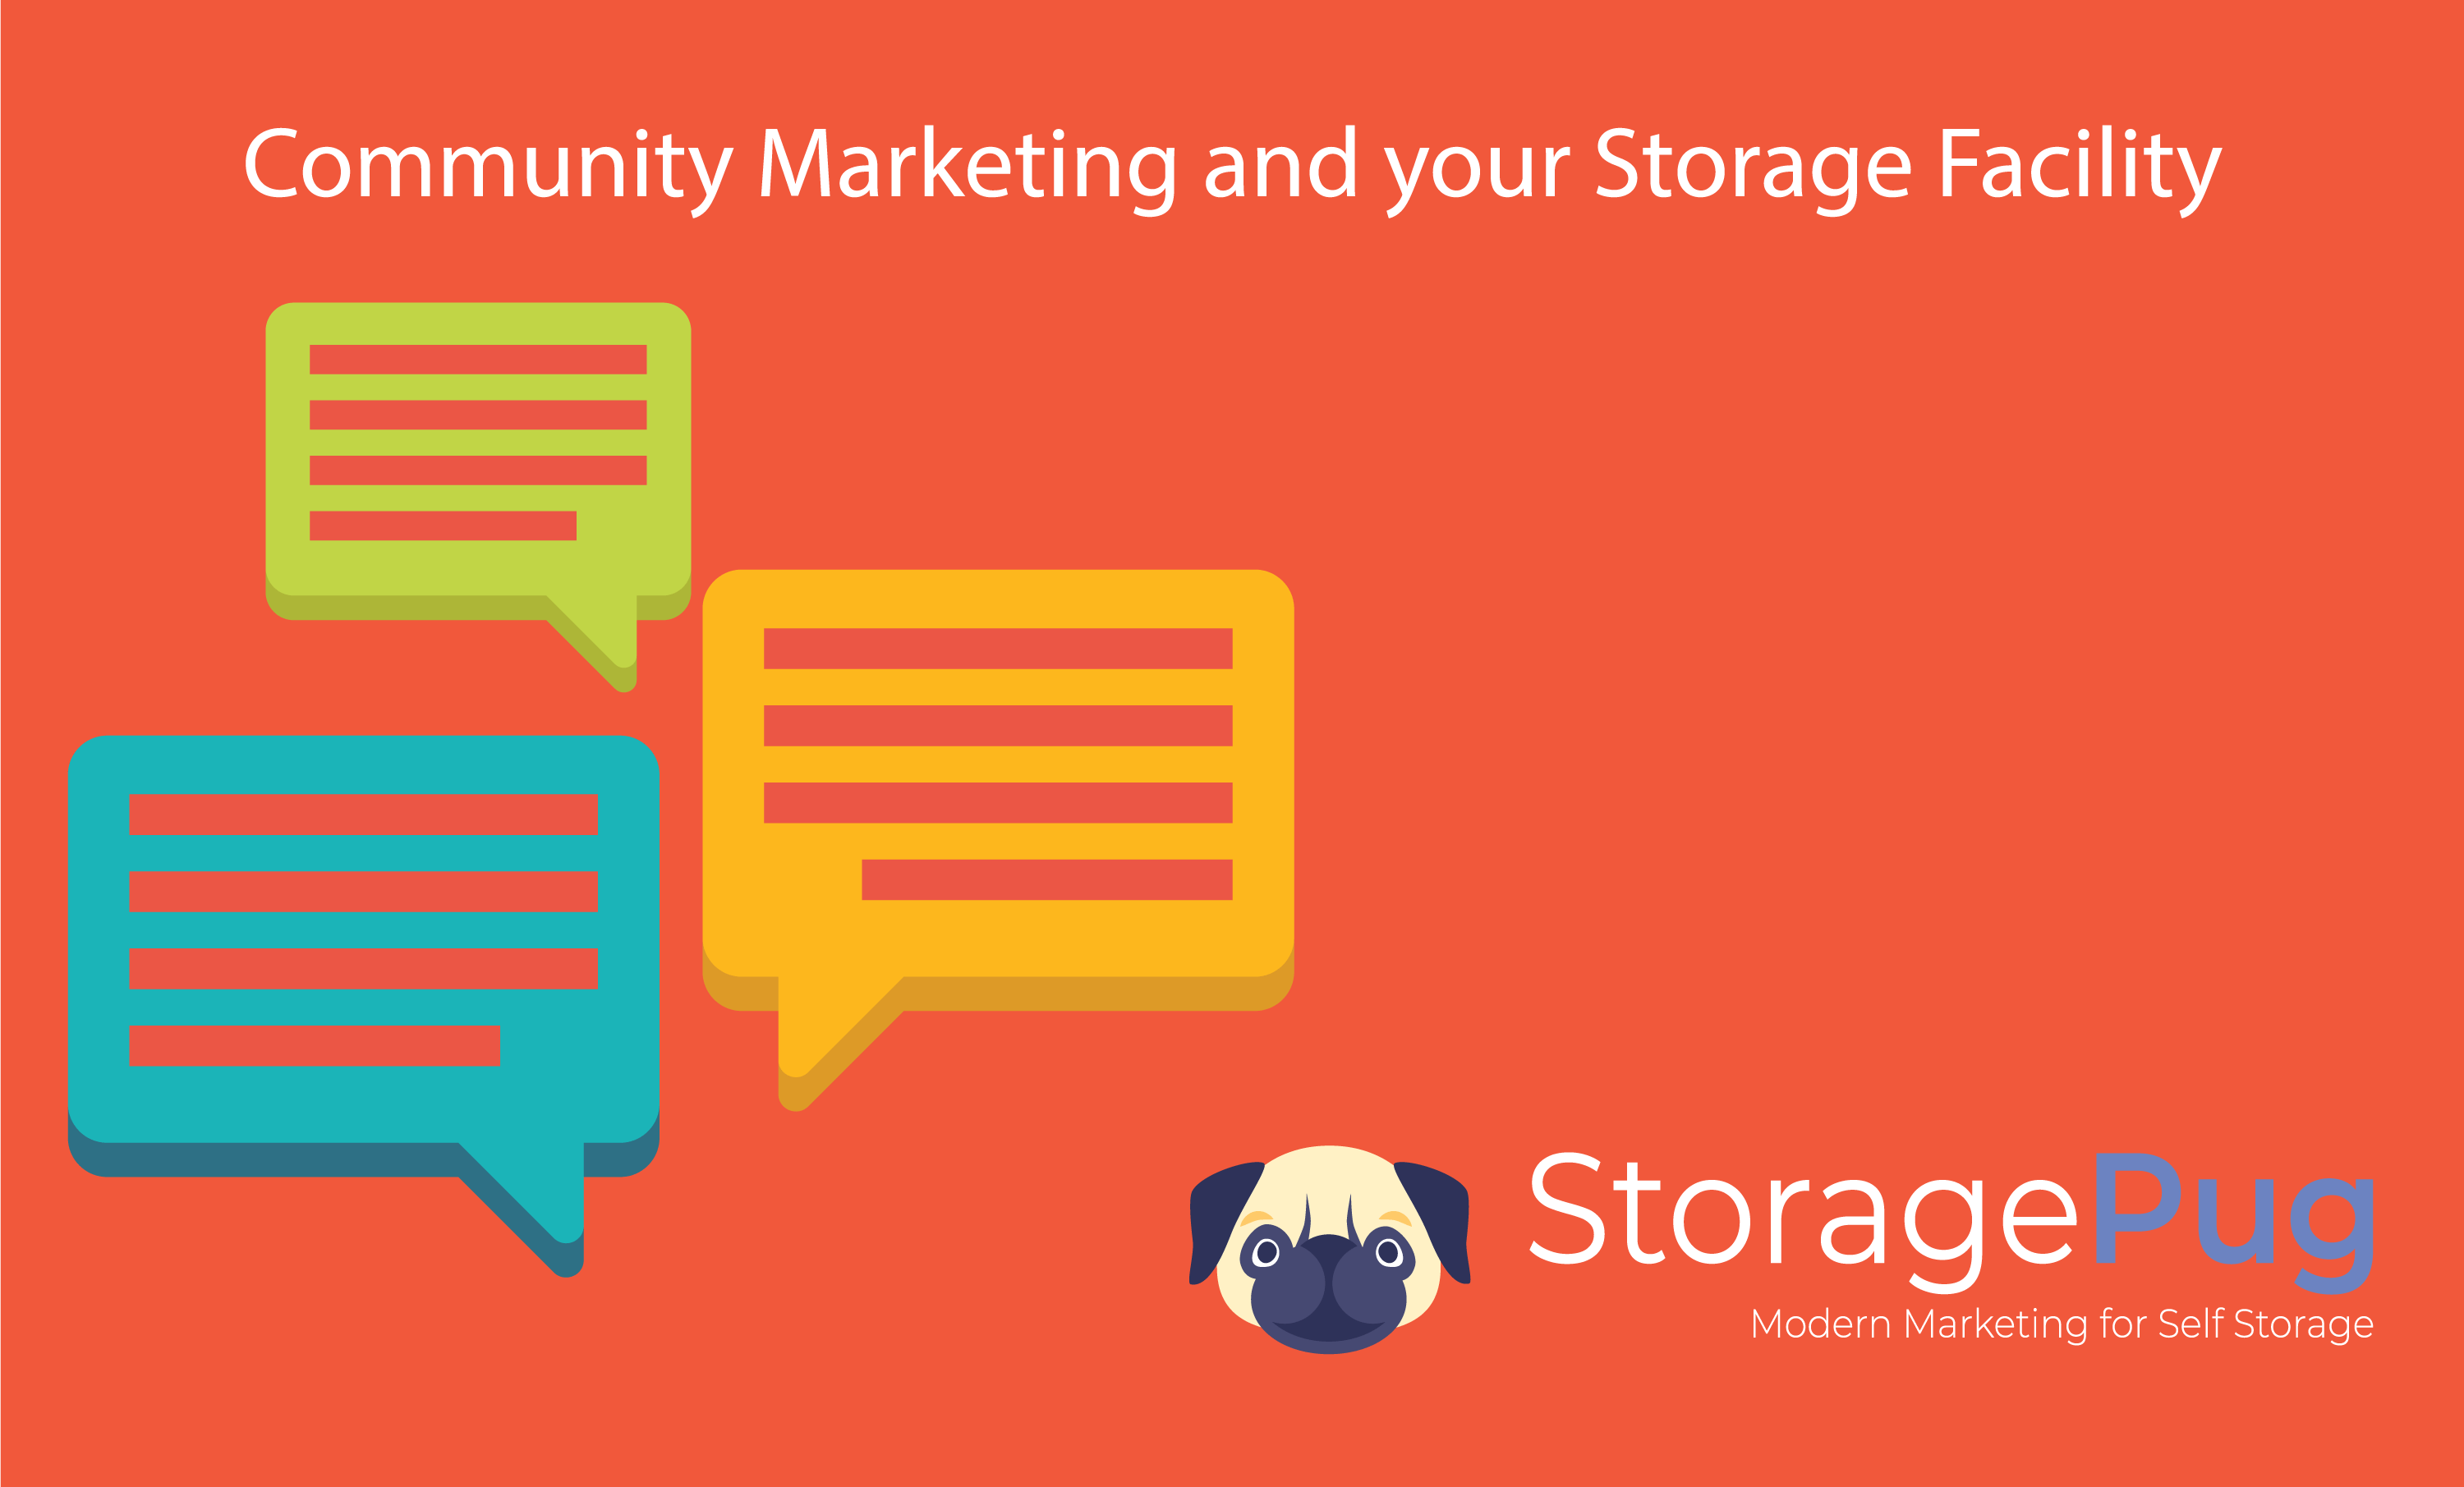 To develop brand awareness in self storage, it means you have to be involved in the community, and that will usually mean your facility gets used for hosting various events.